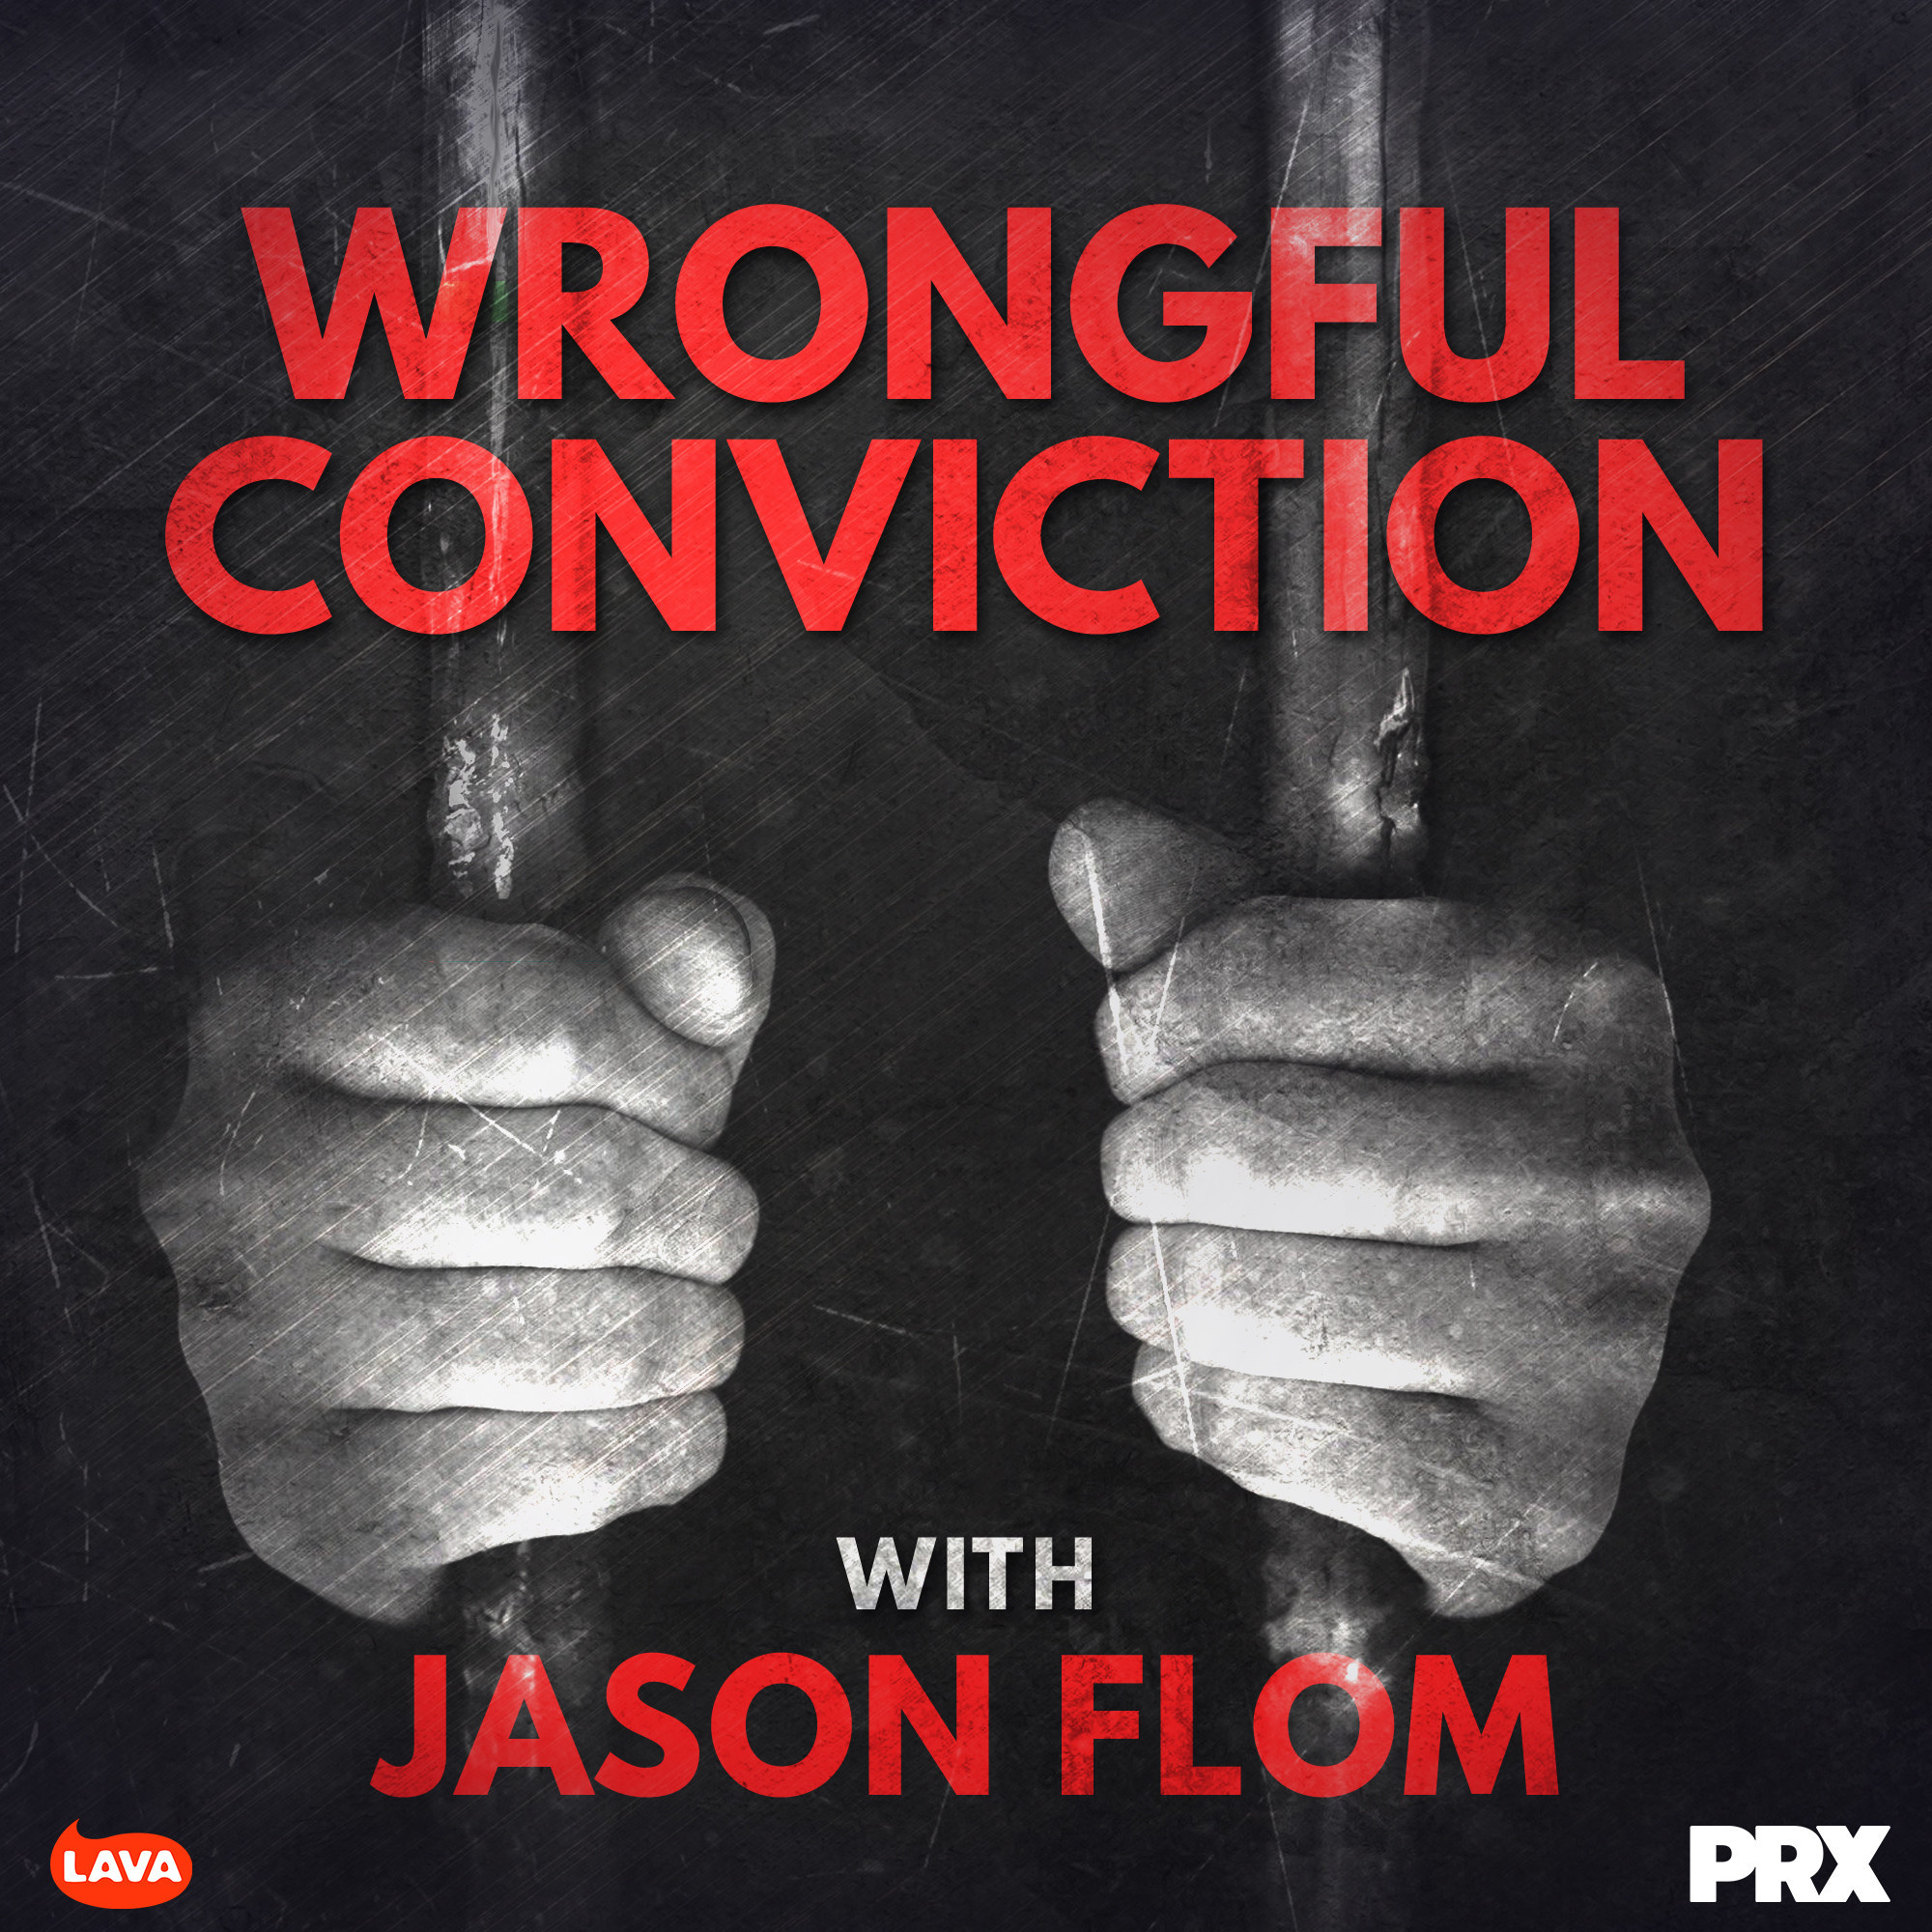 Wrongful Conviction with Jason Flom logo